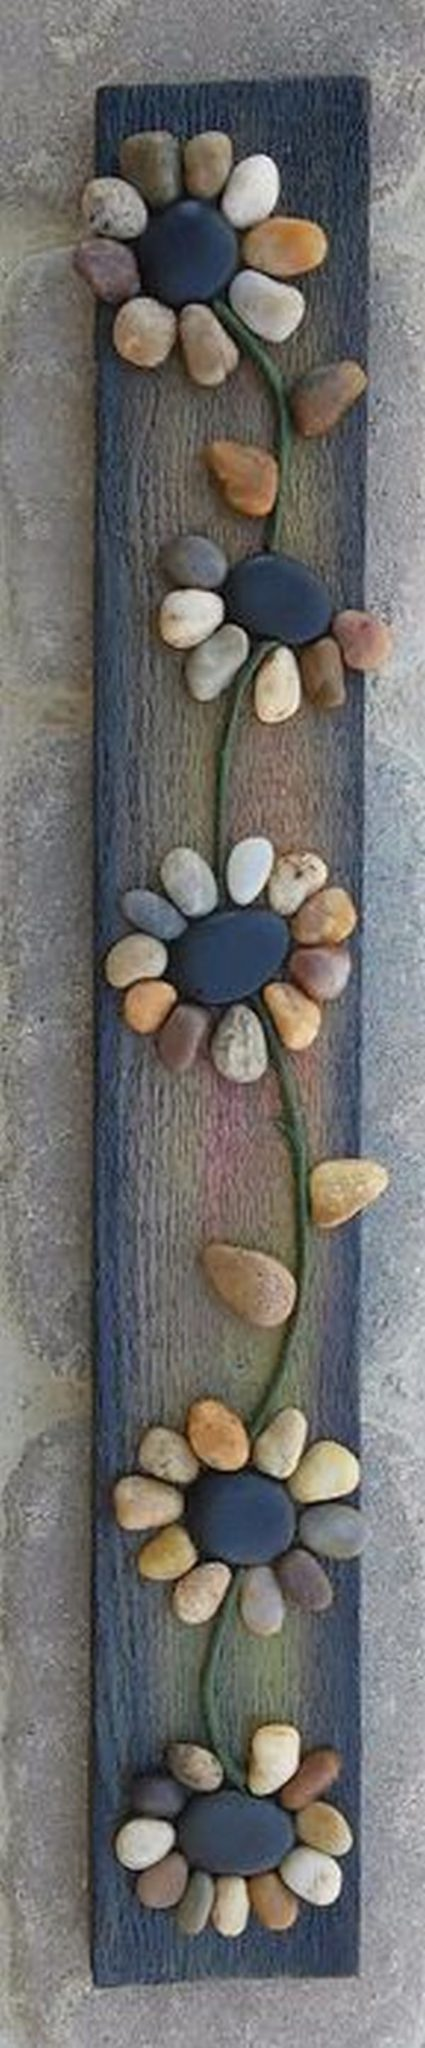 Decorative stones art8